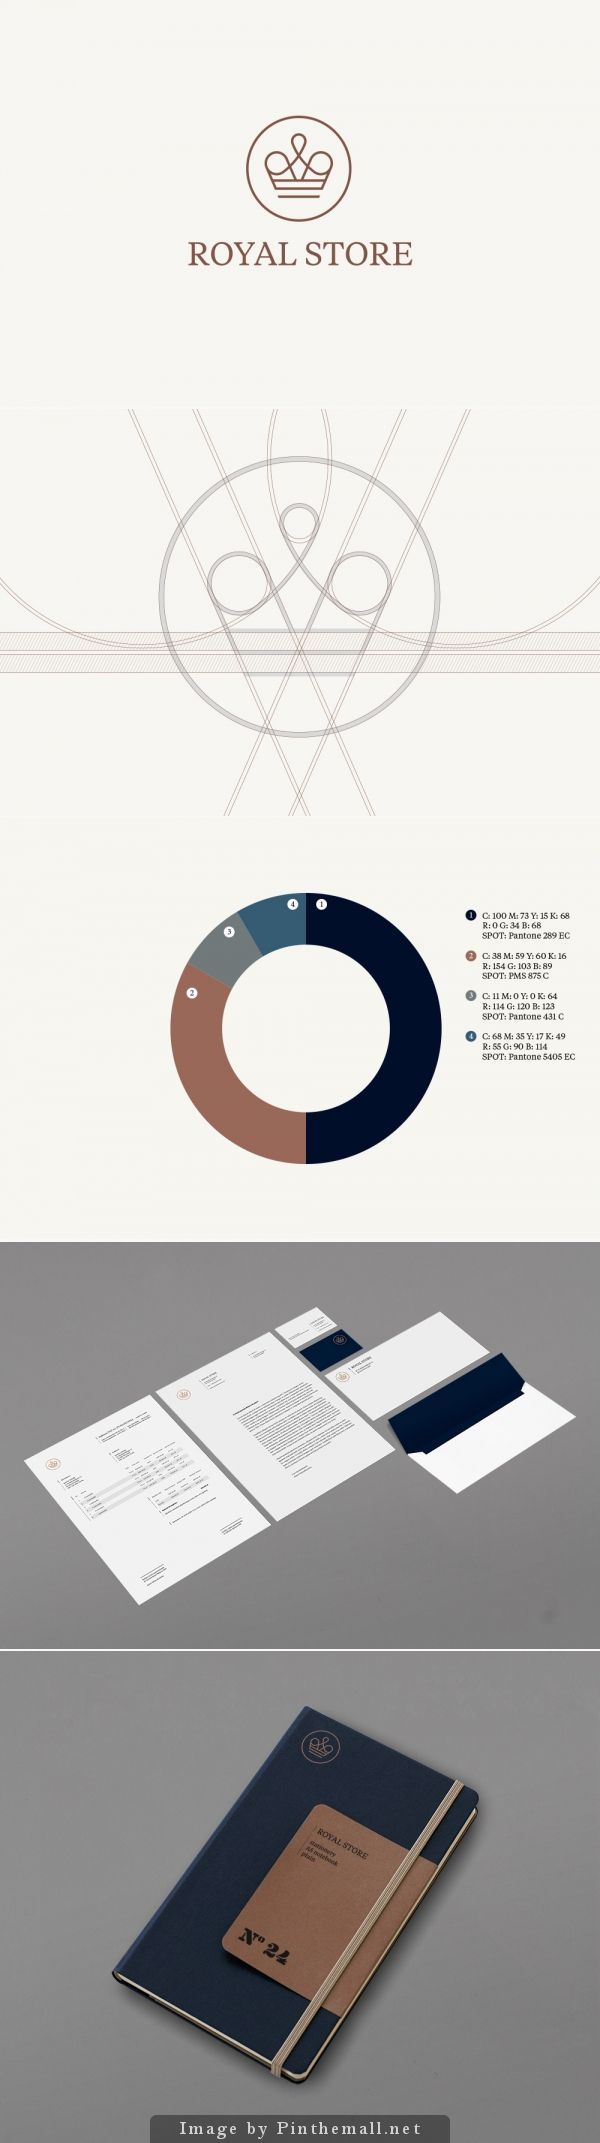 royal store / fuerte | #stationary #corporate #design #corporatedesign #identity #branding #marketing < repinned by www.BlickeDeeler.de | Visit our website: www.blickedeeler.de/leistungen/corporate-design